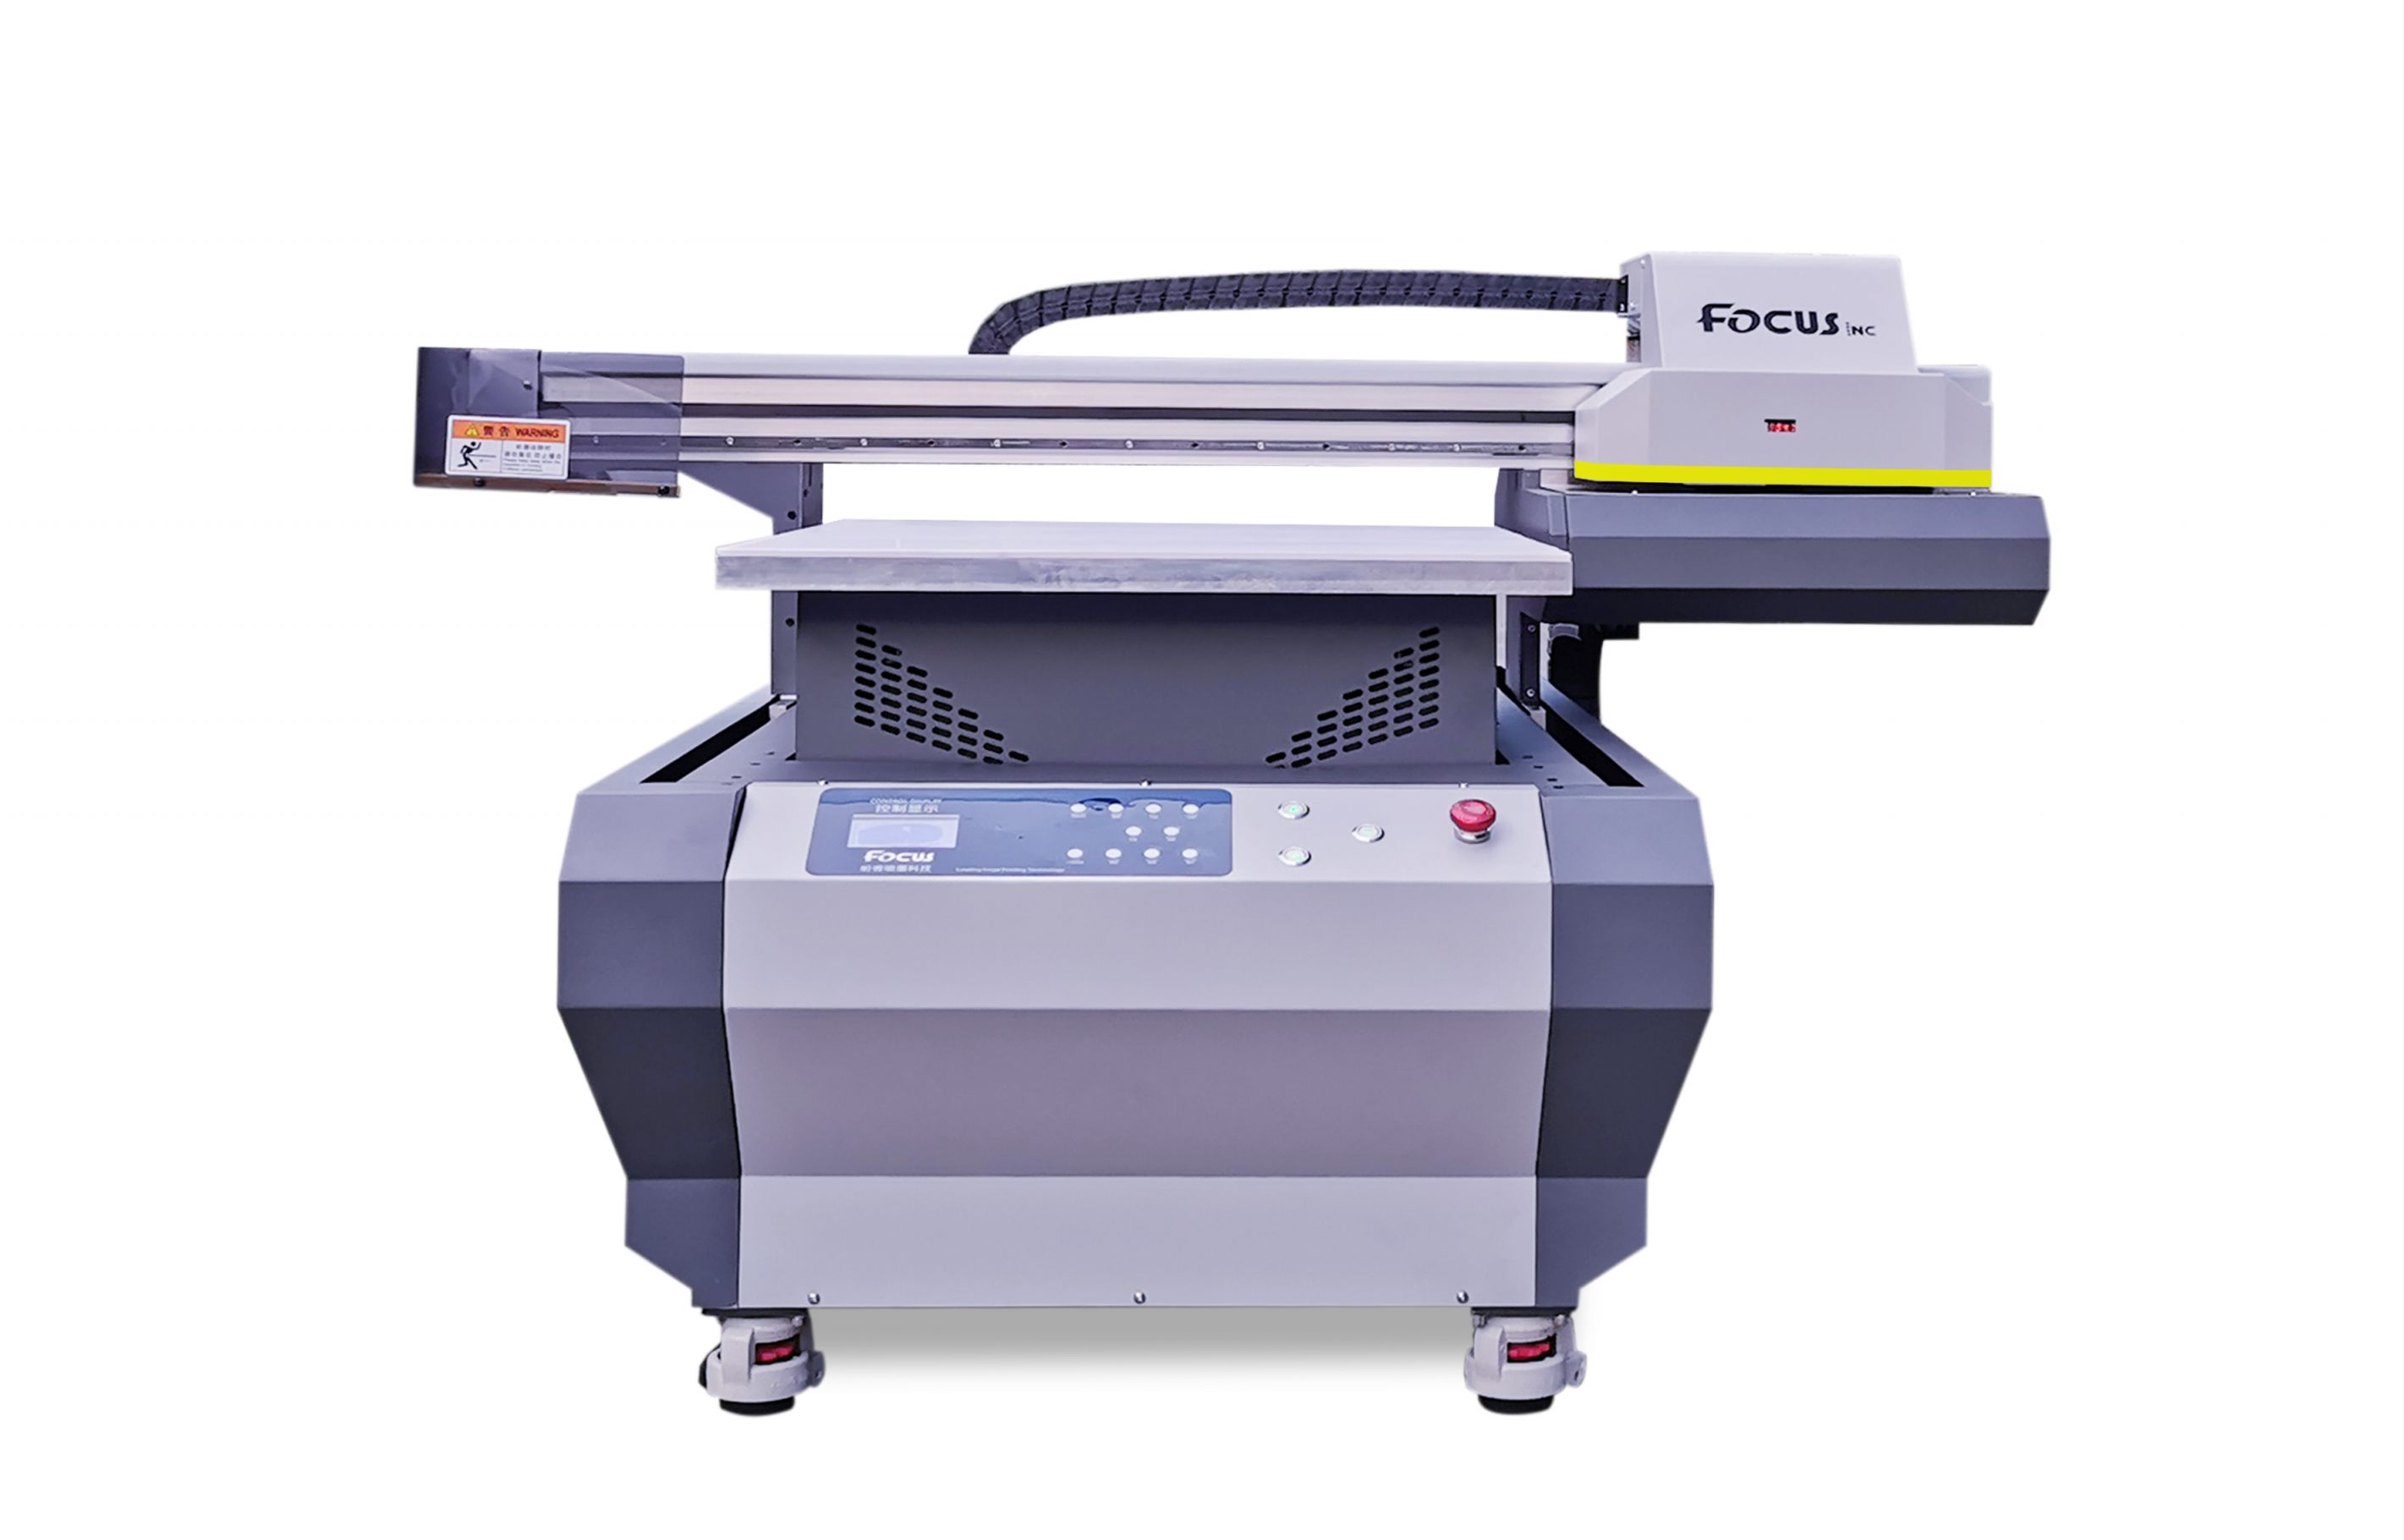 https://www.focus-printer.com/upfile/2019/09/06/20190906225947_760.jpg